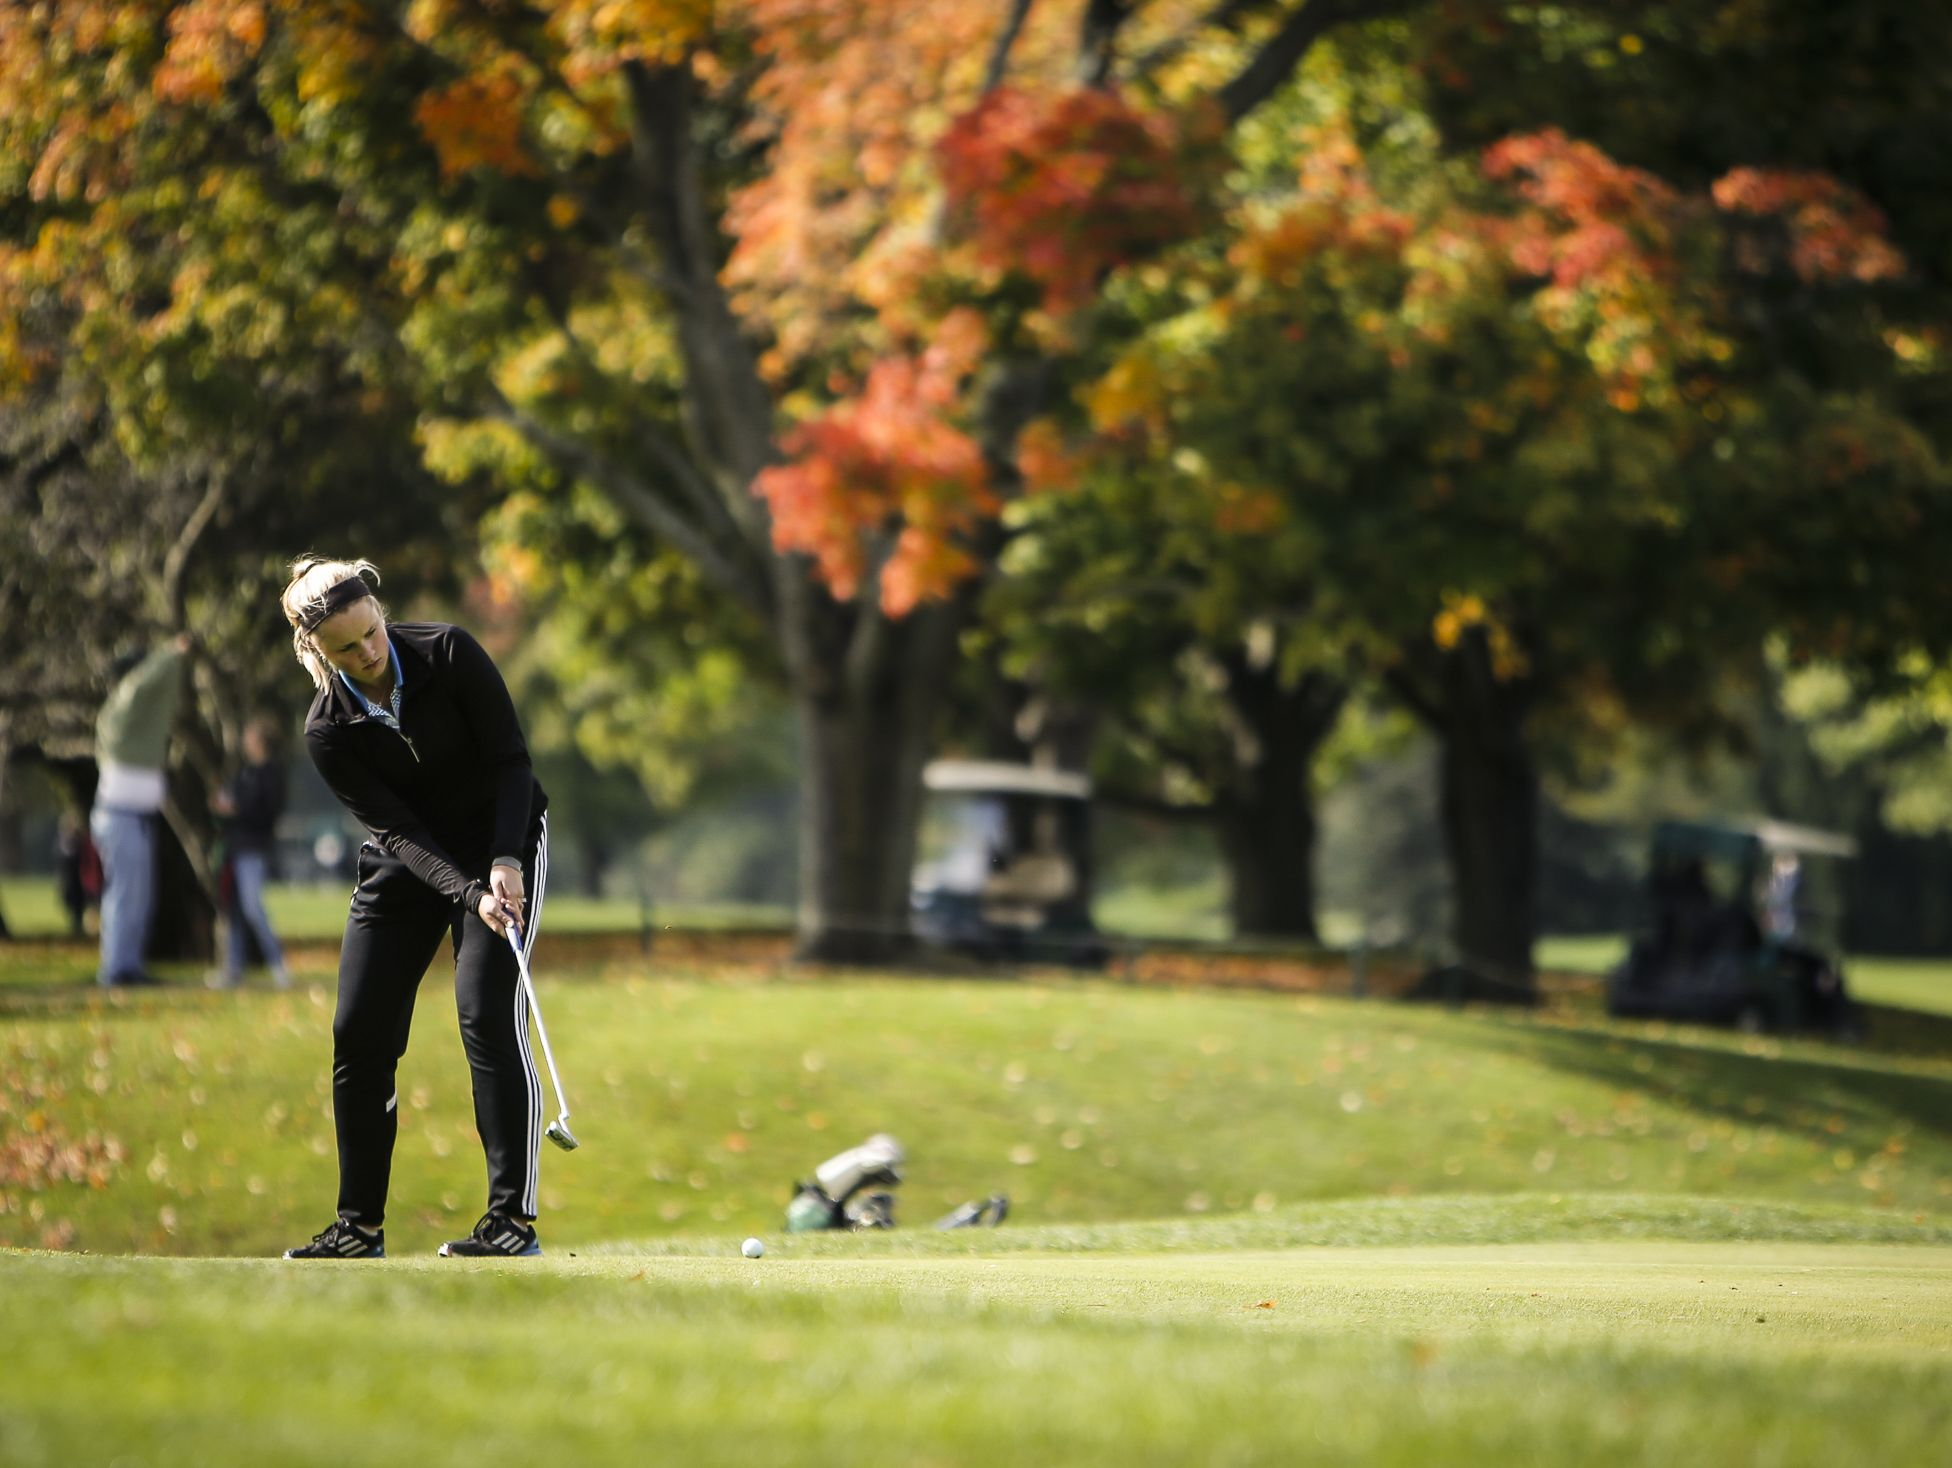 Lansing Catholic senior Abigail Meder works the fourth green during the Div. 4 Girls Golf Finals October 15, 2016, at Forest Akers West at Michigan State University.